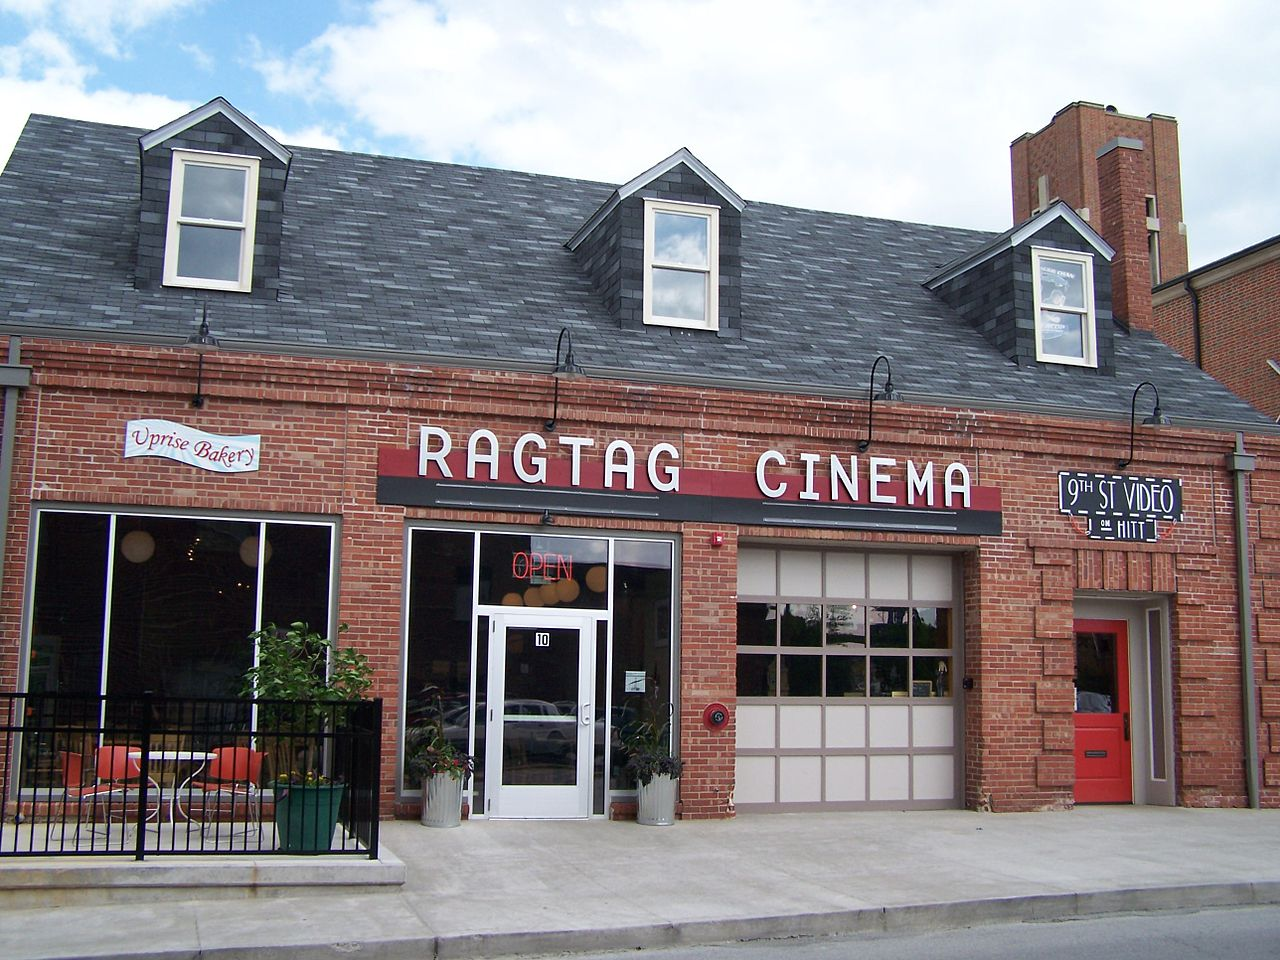 The Coca-Cola Bottling Company Building is now the location of the indpendent movie theater Ragtag Cinema.